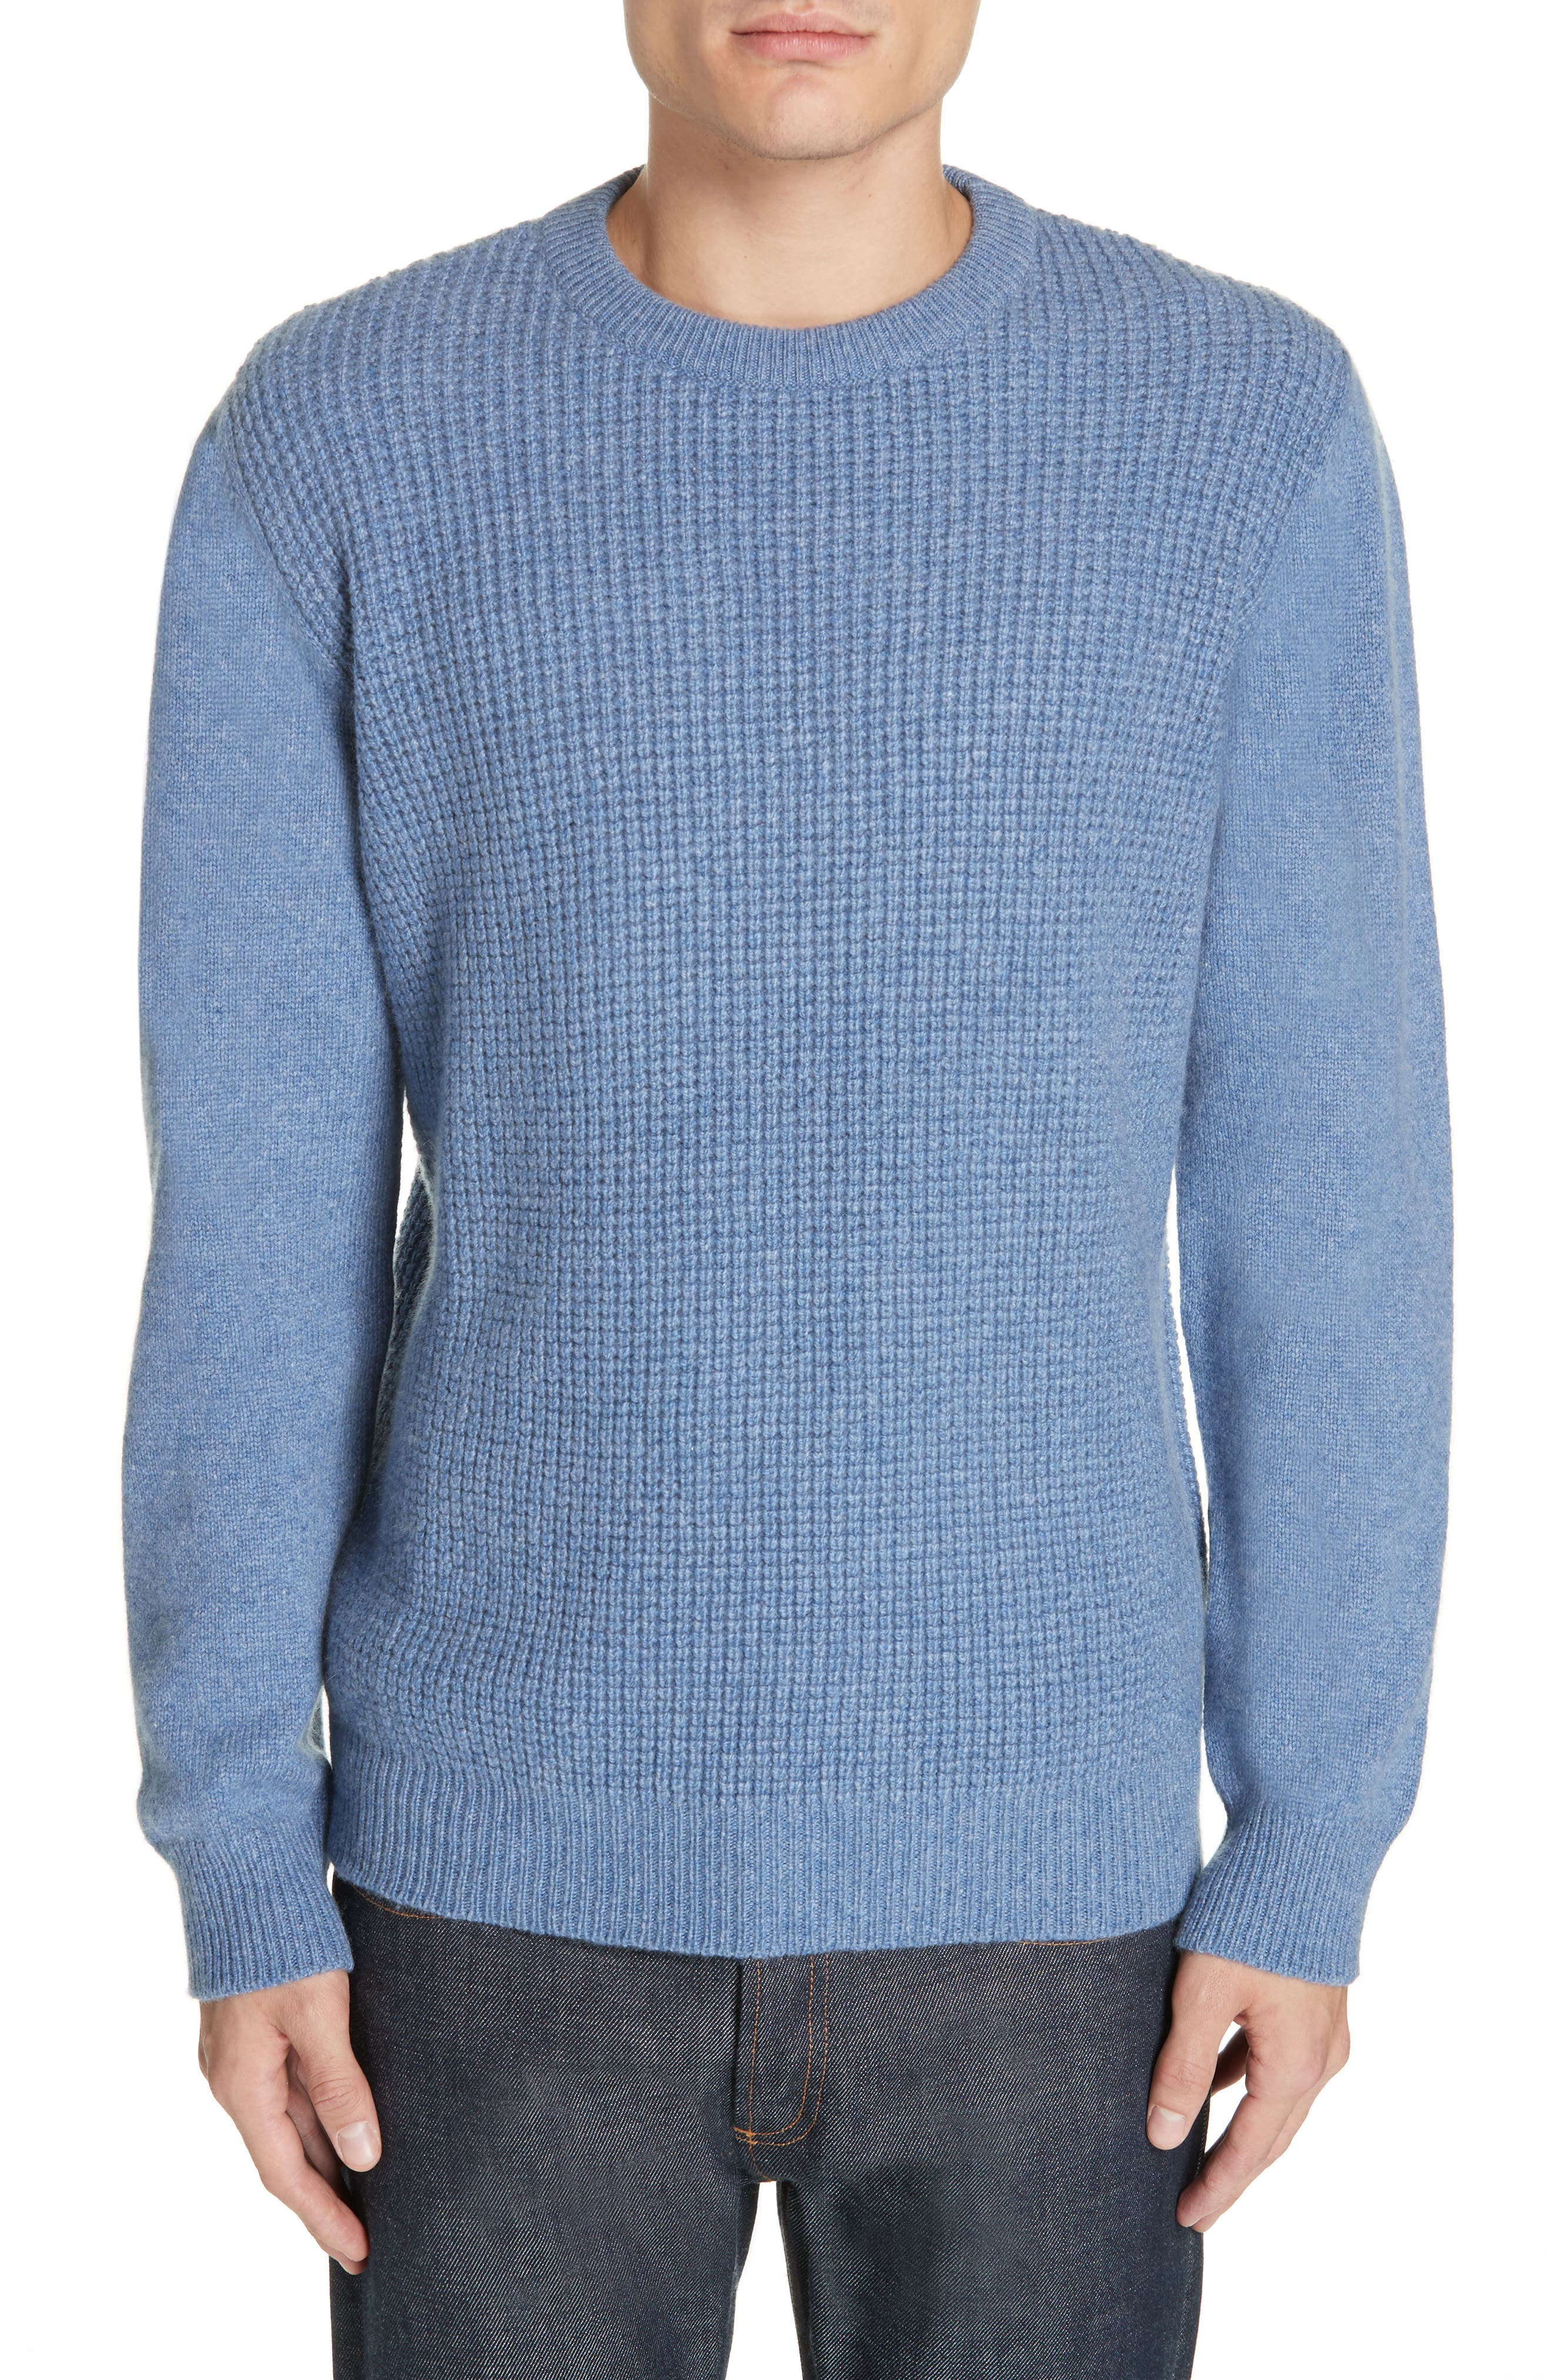 Waffle Knit Cashmere Crewneck Sweater,                         Main,                         color, LIGHT BLUE